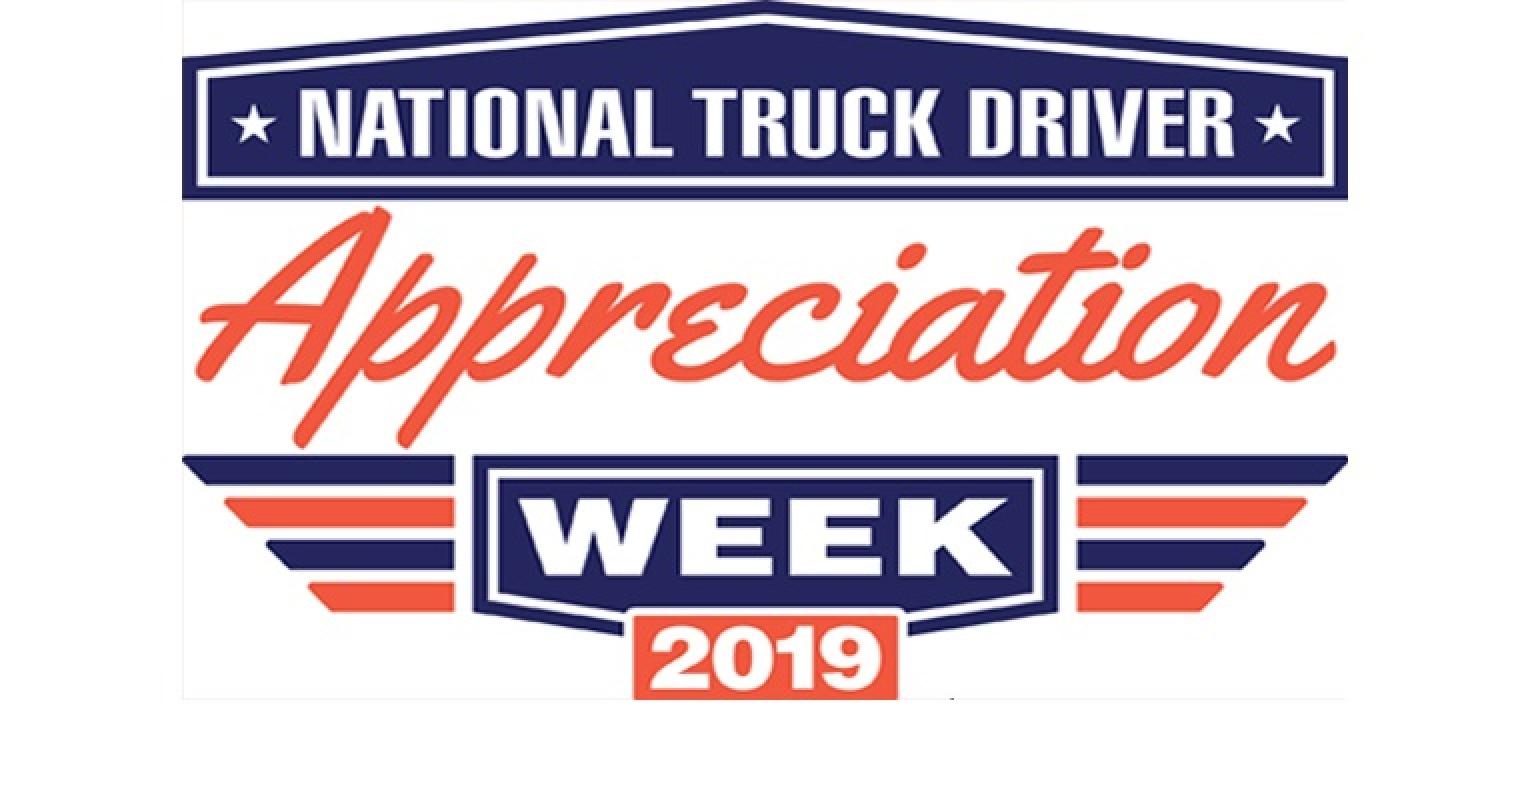 National Truck Driver Appreciation Week Super Dispatch best deals for truckers and auto transporters